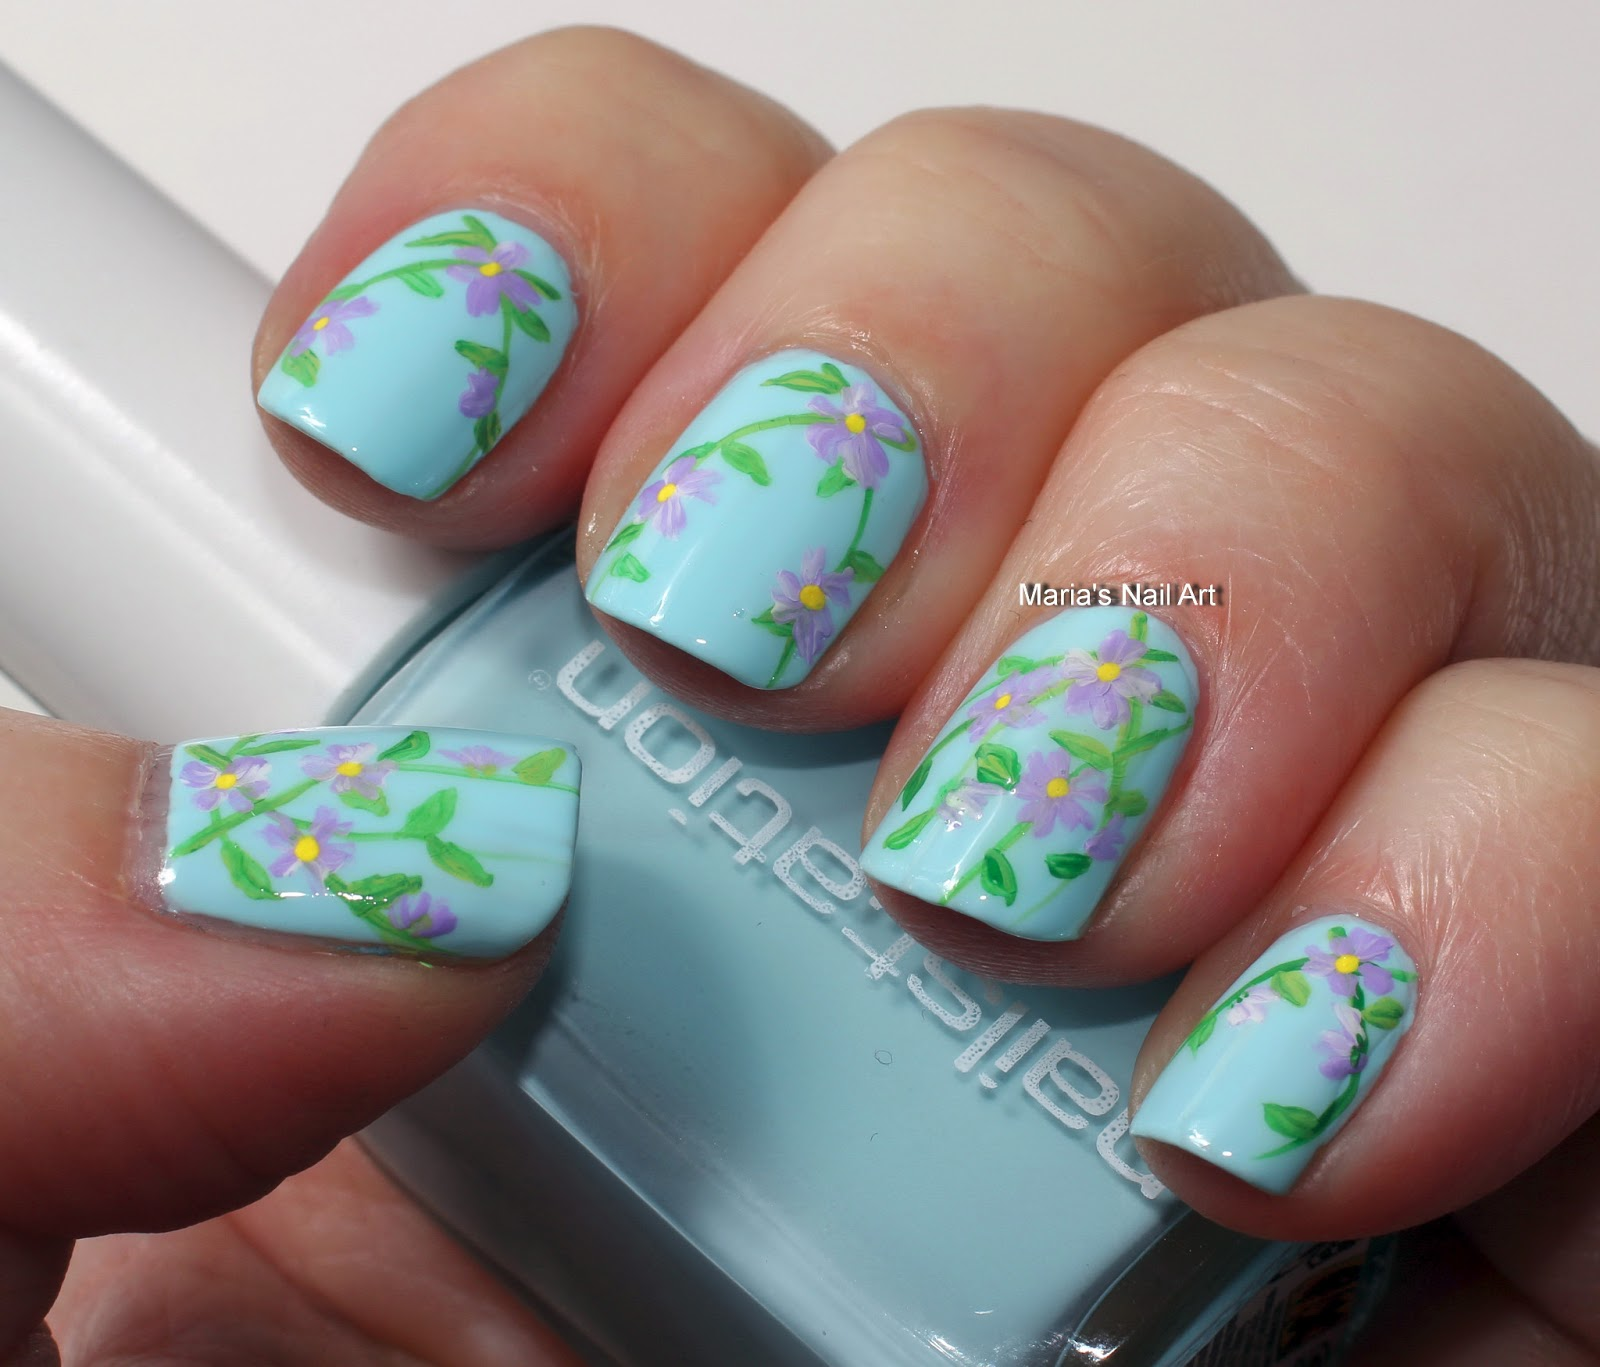 Marias Nail Art And Polish Blog Subtle Floral Nail Art On: Marias Nail Art And Polish Blog: Subtle Flower Vines For Gomme